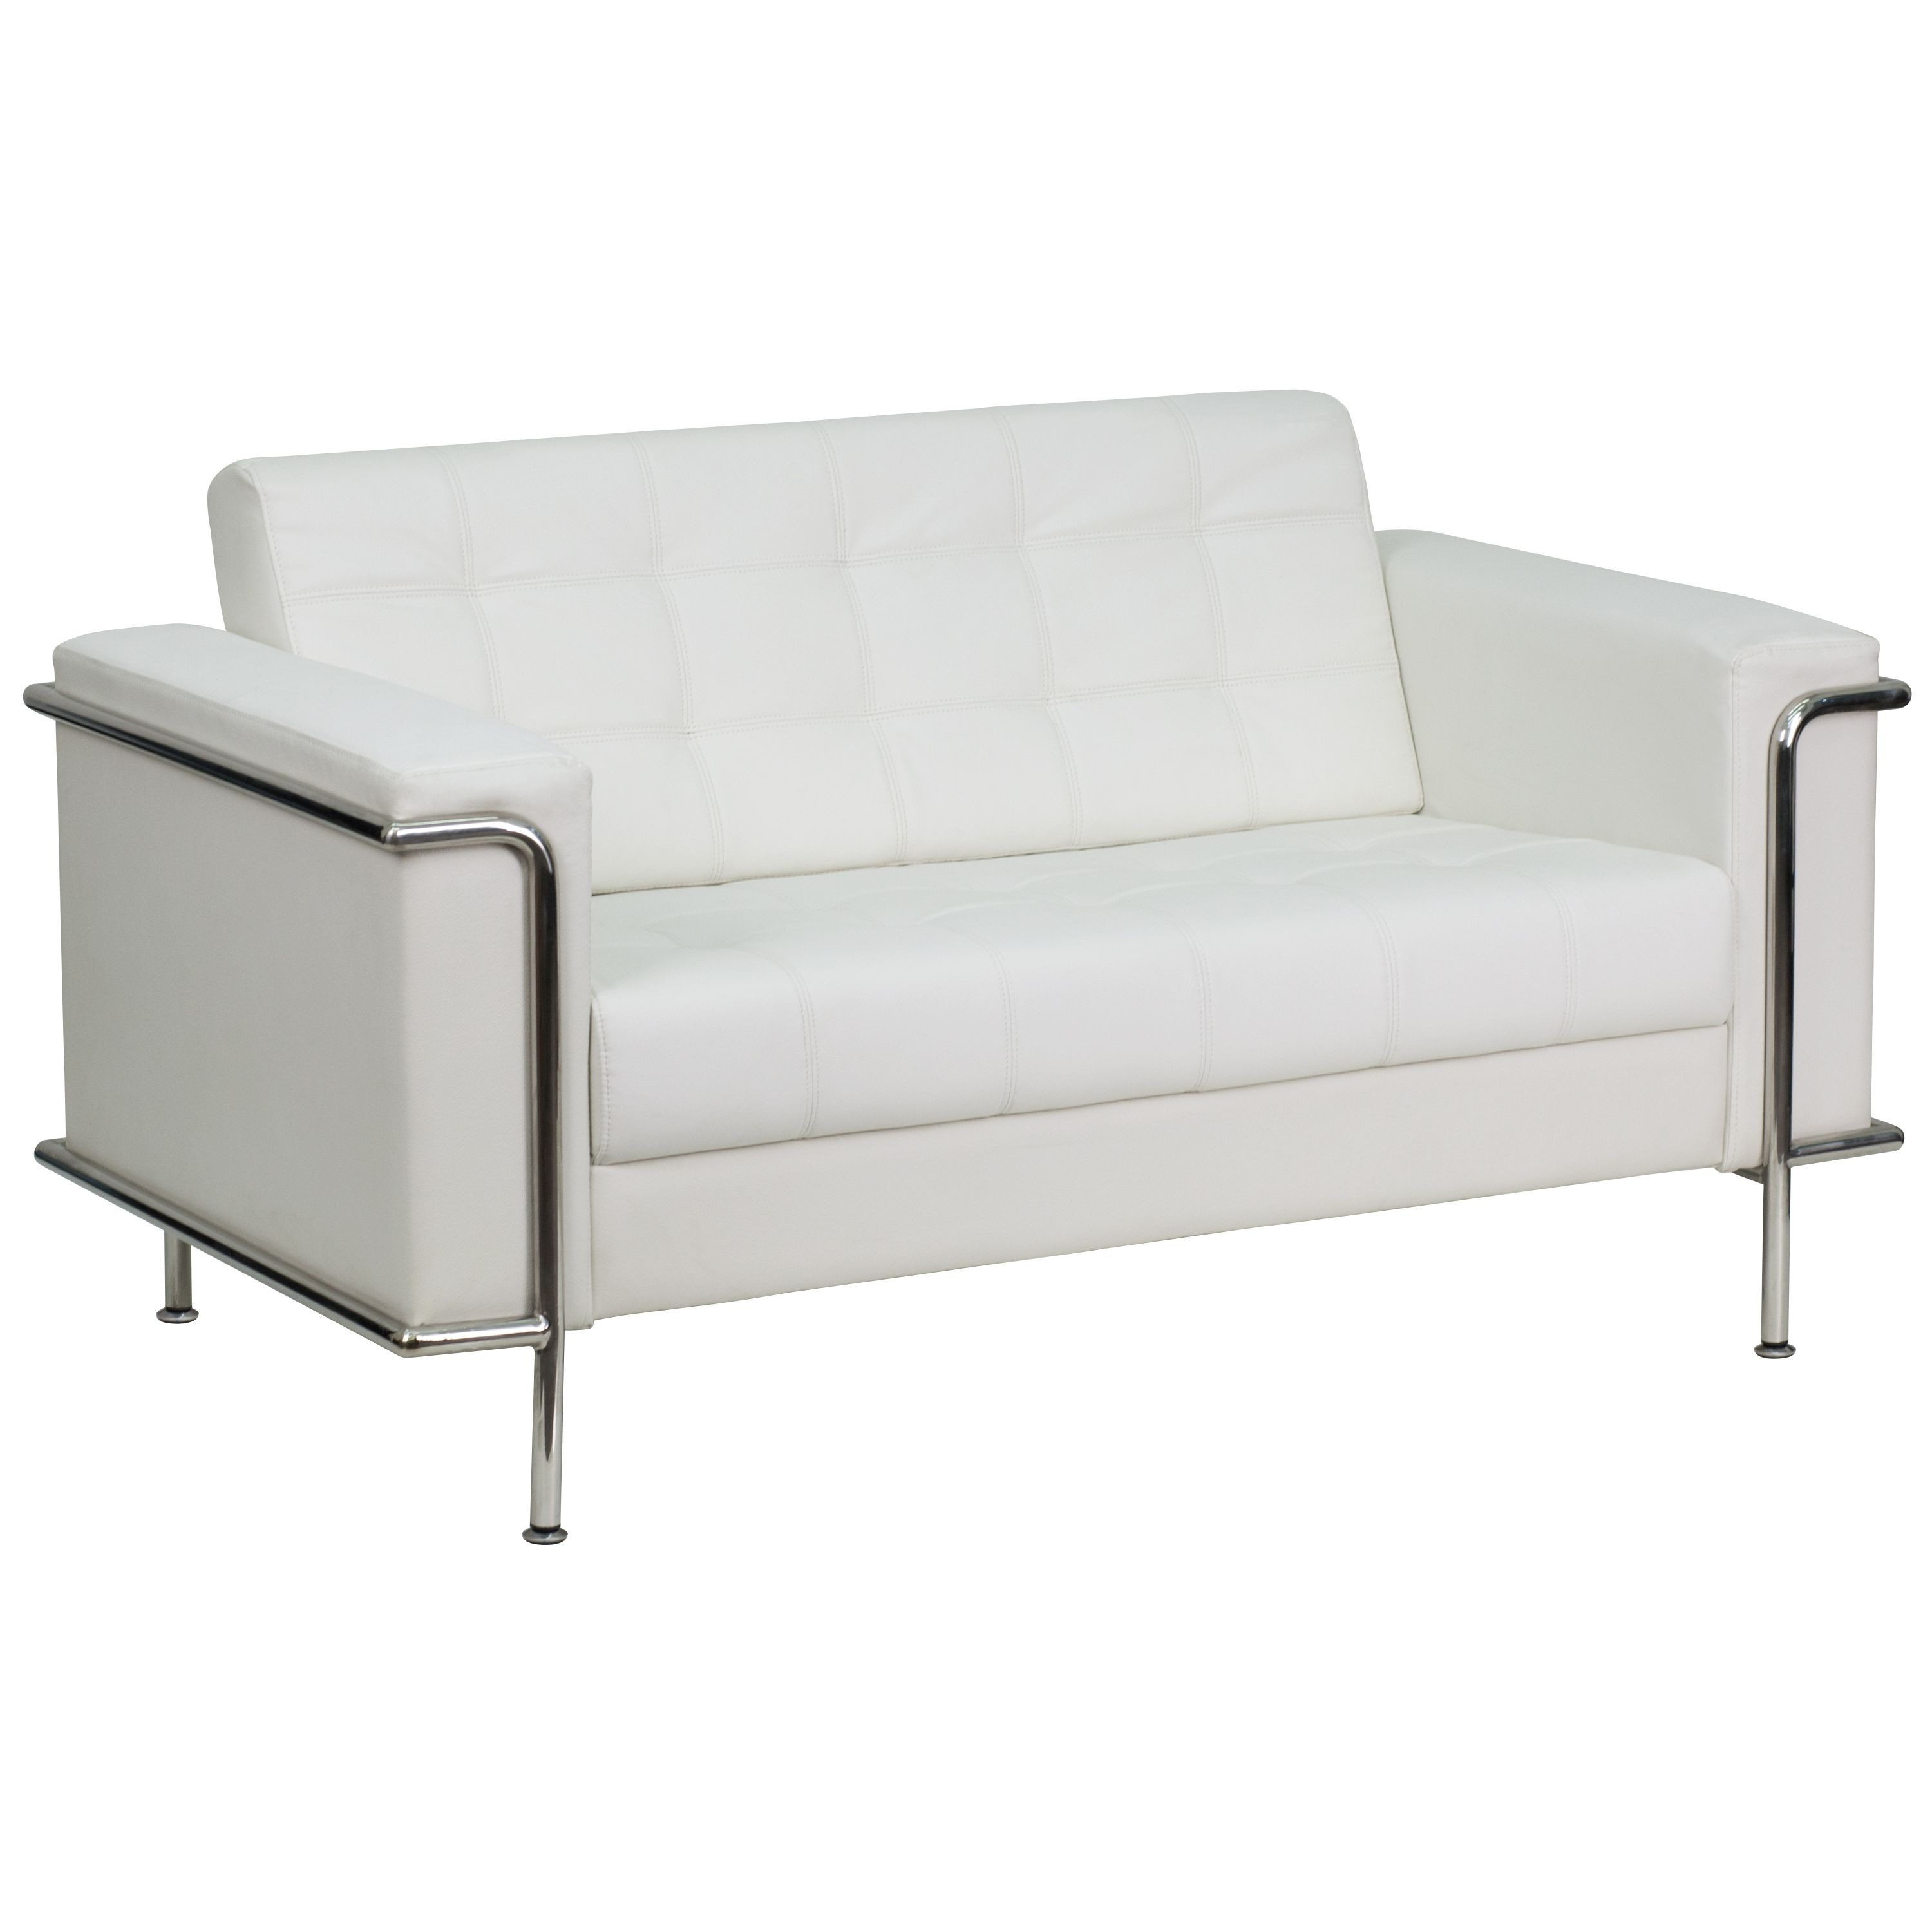 Lesley Series Contemporary White Leather Love Seat with Encasing Frame